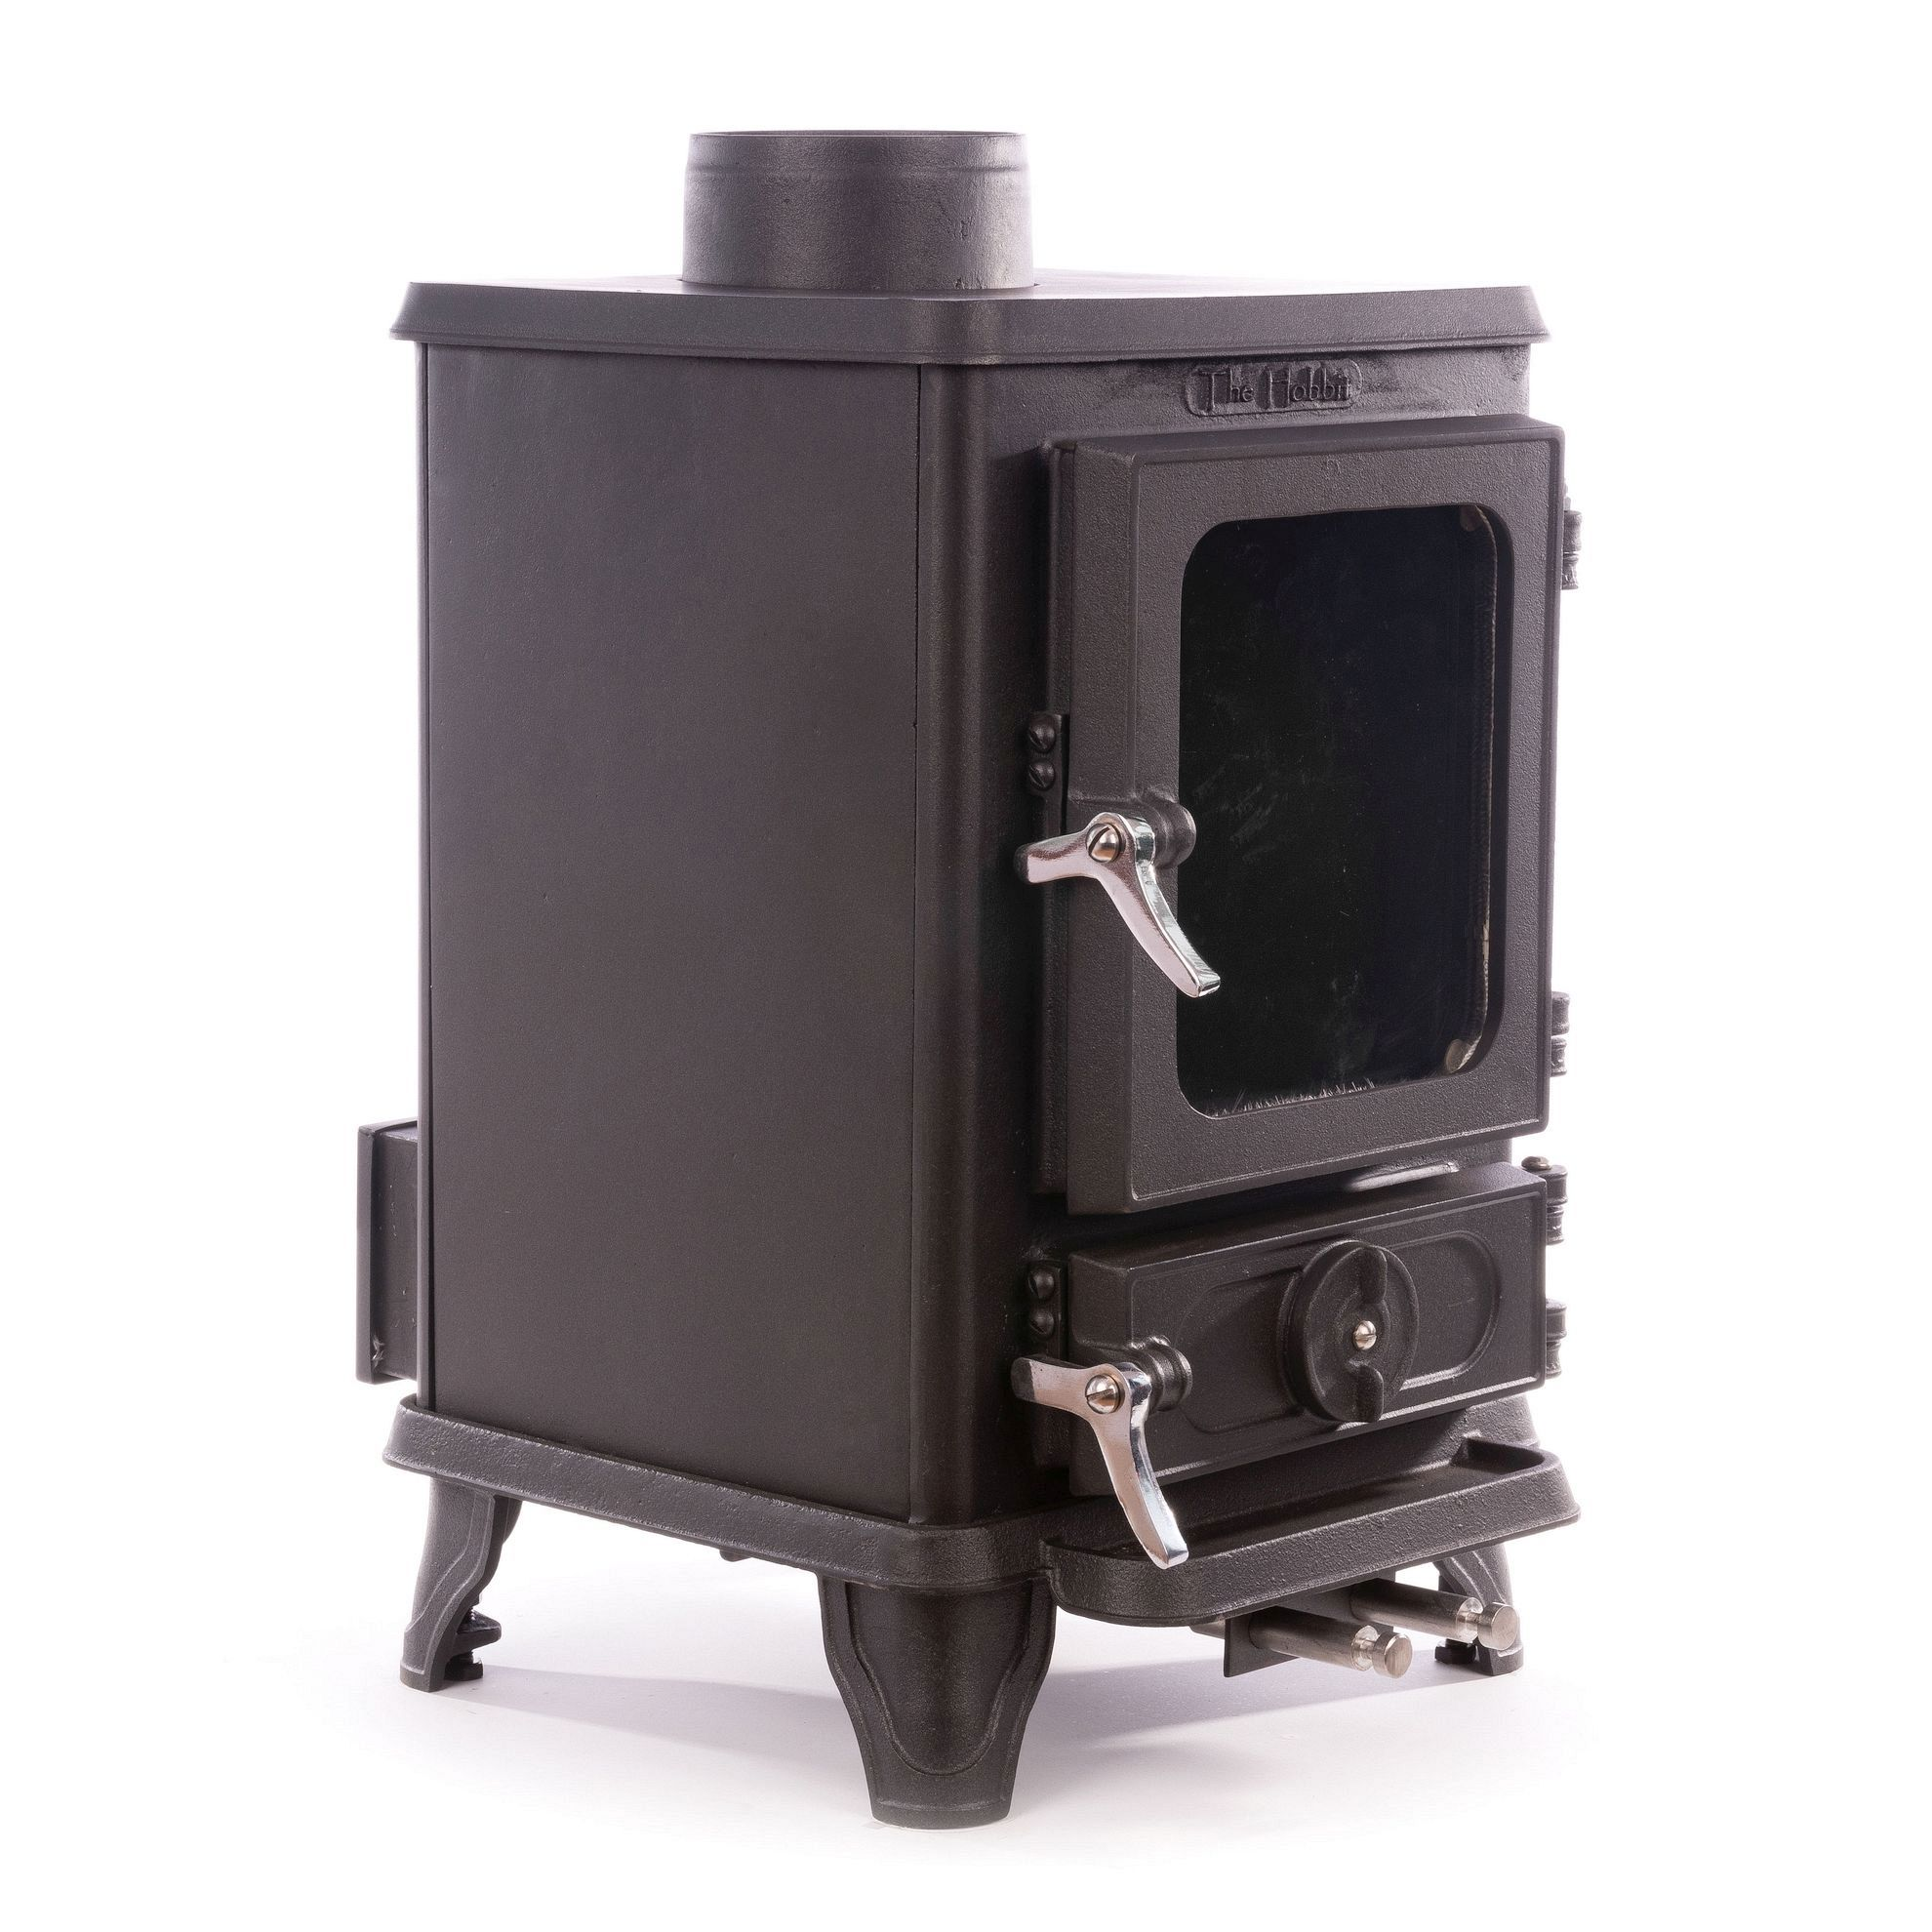 The Tiny Wood Cookstove Defra Approved